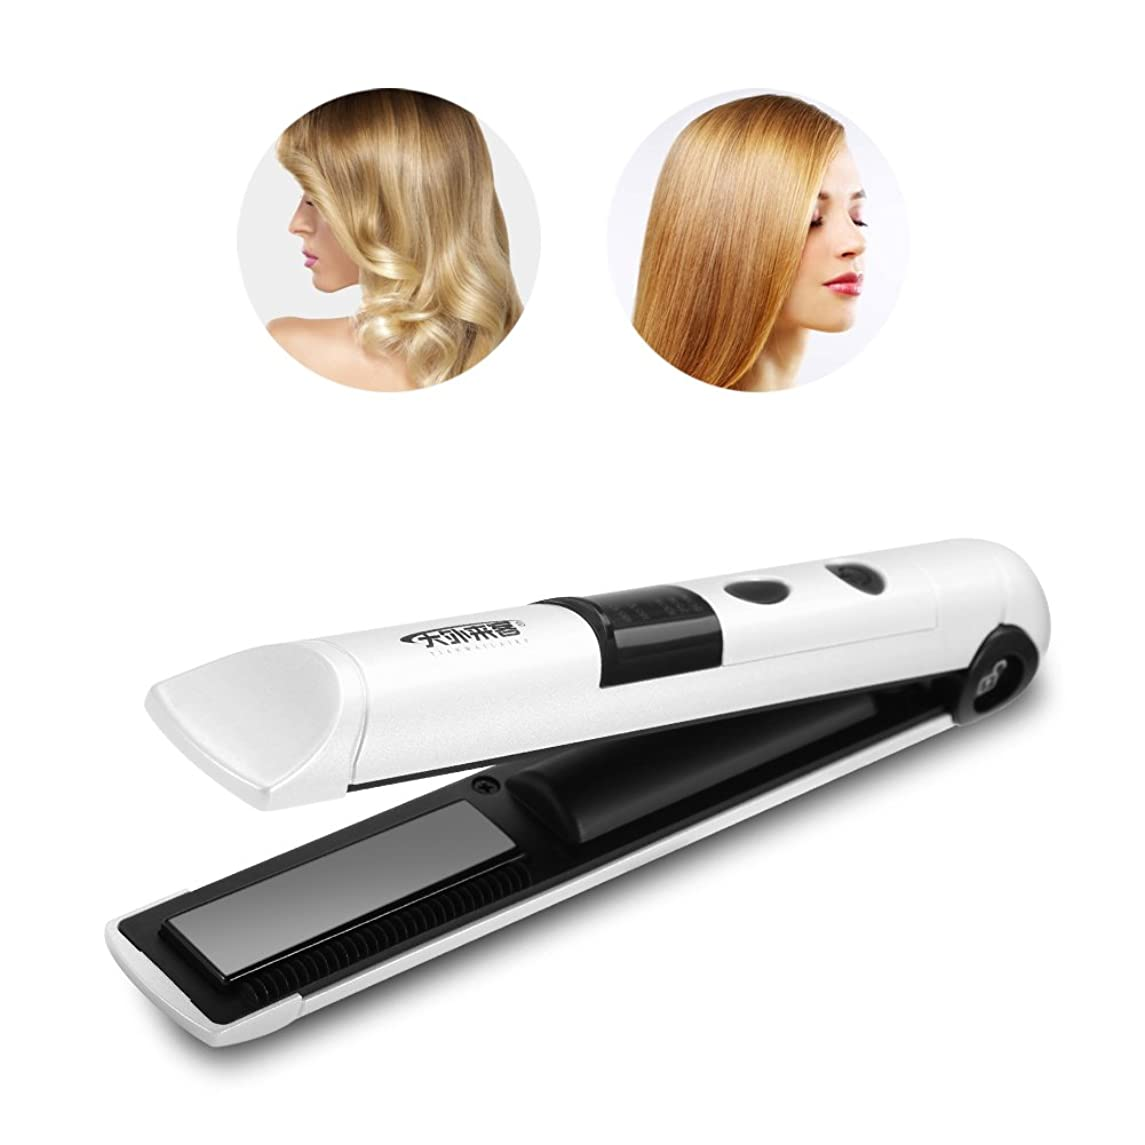 Wireless curling iron, mini rechargeable straight hair/curling iron, portable curl/straight hair for hairstyles 3 colors (1#)